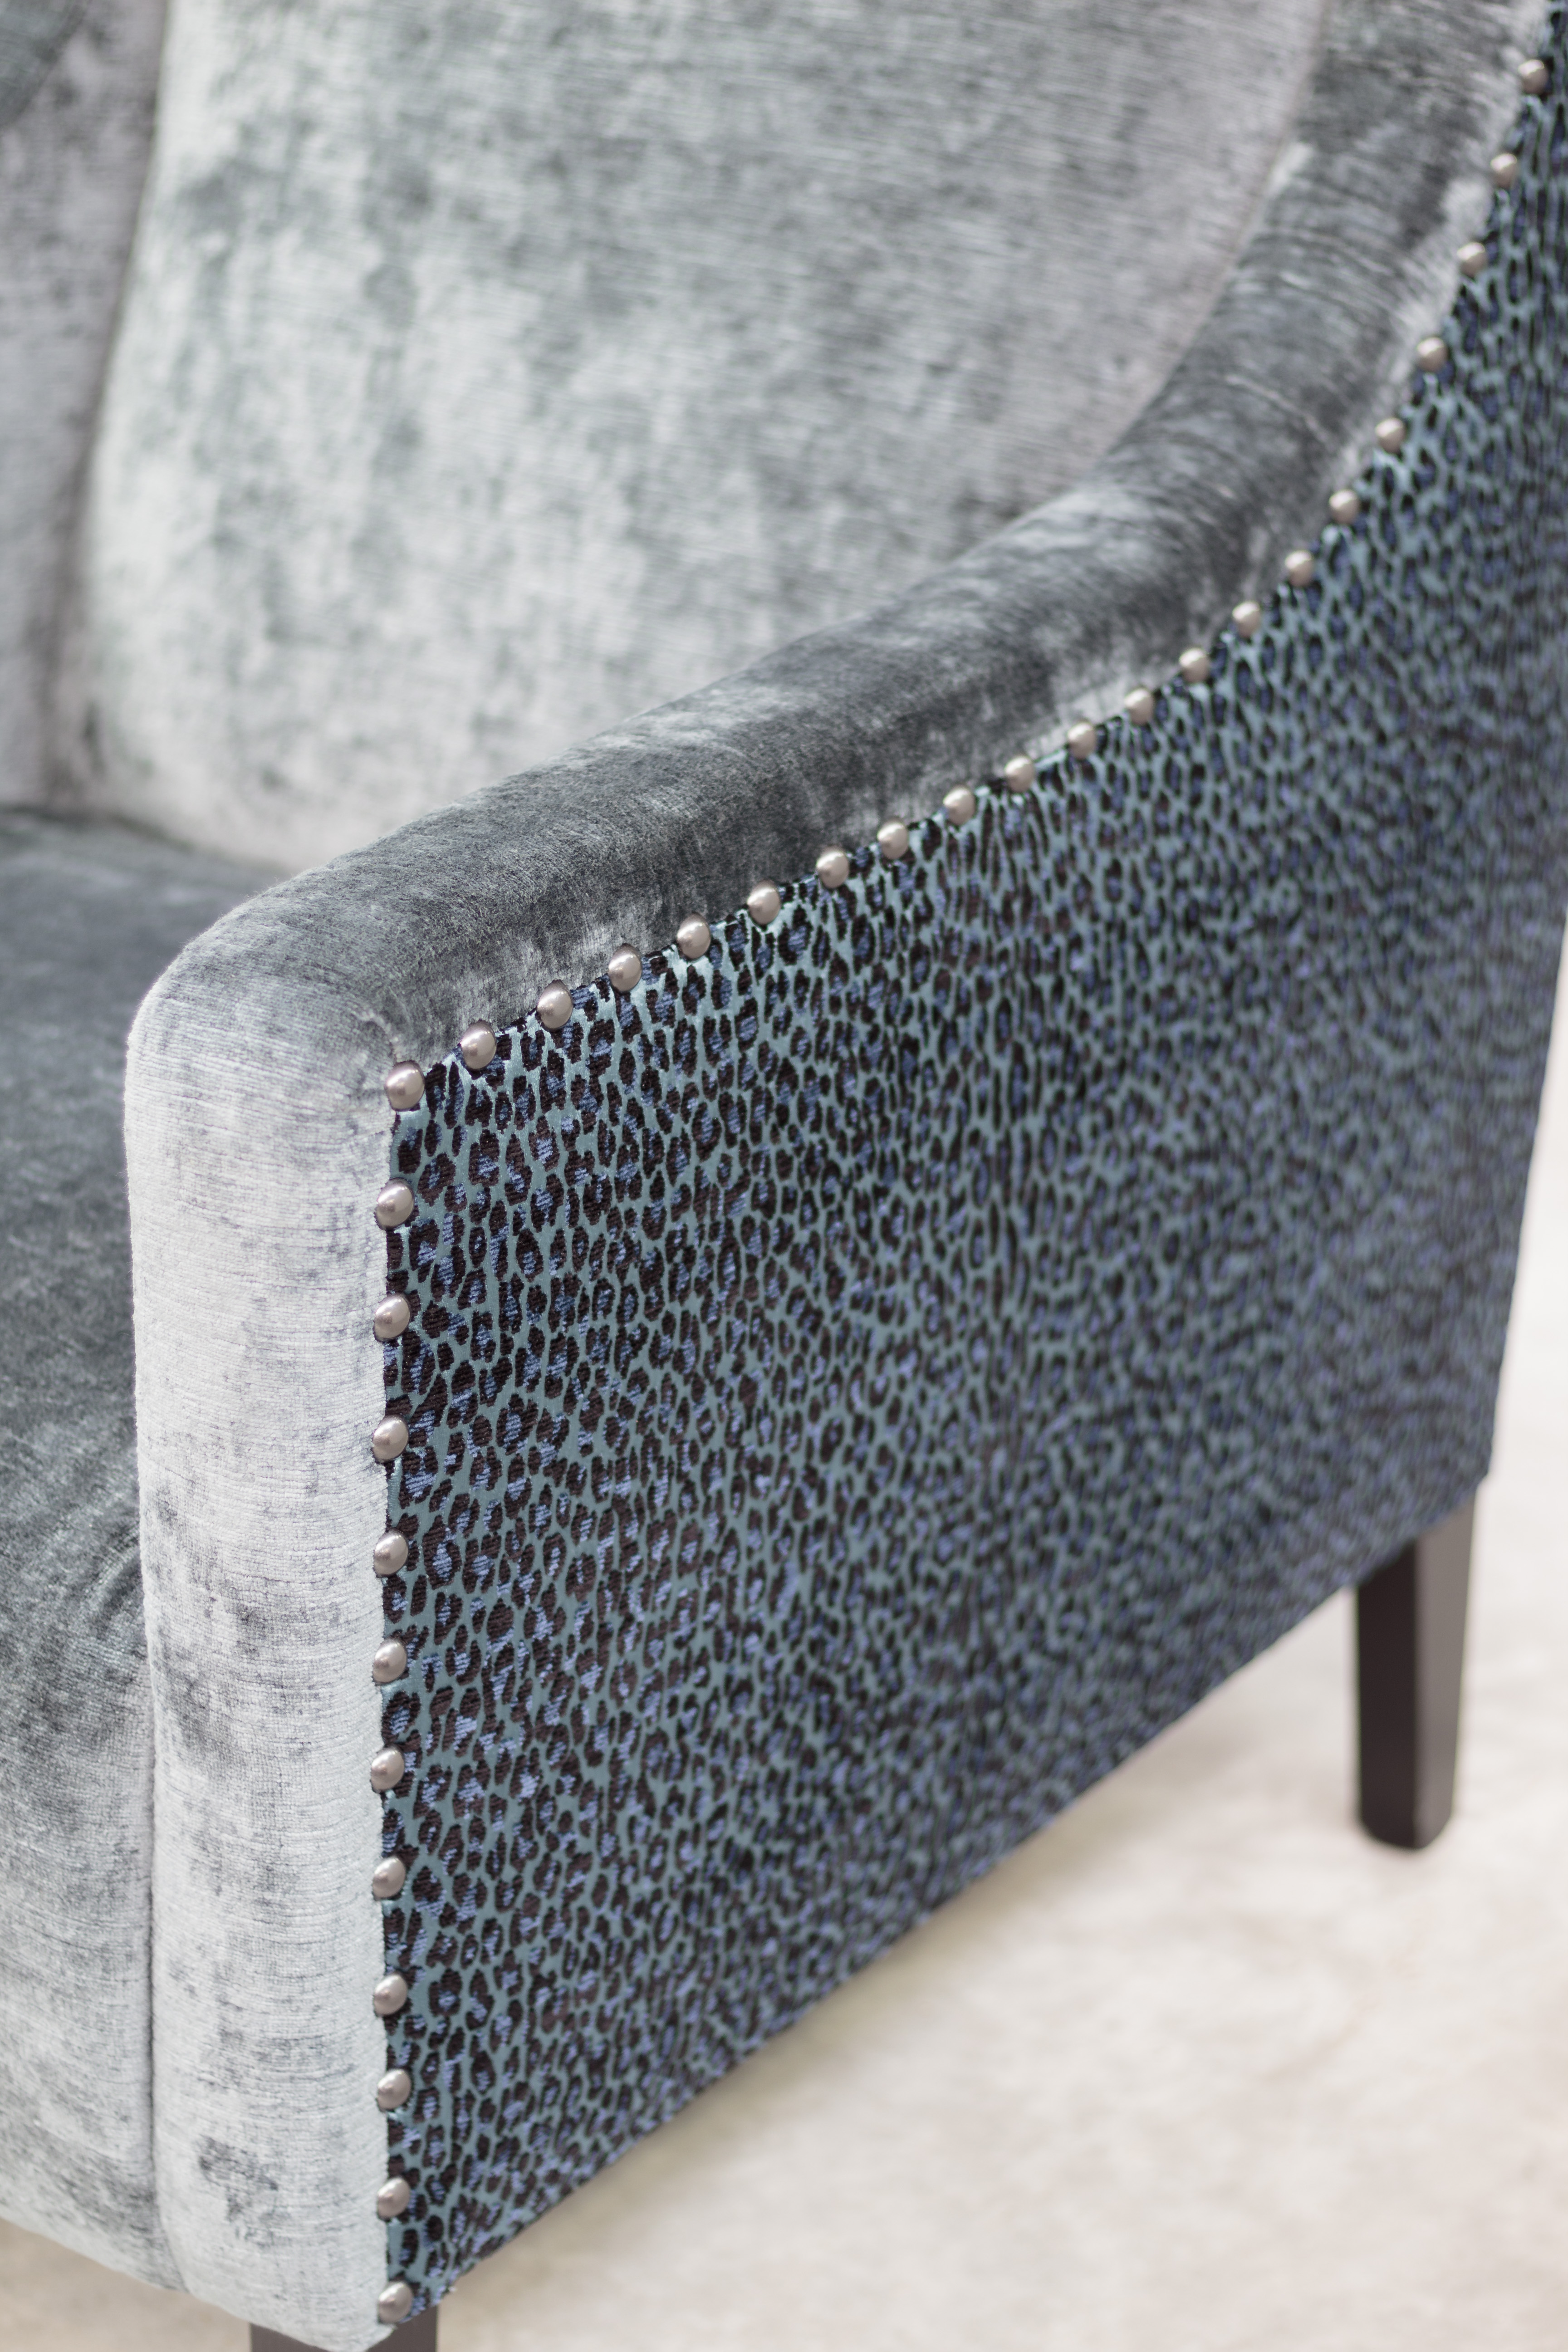 Montreux High Back Kidman chair in Mokum 'Leopardo' and 'Bespoke' velvet